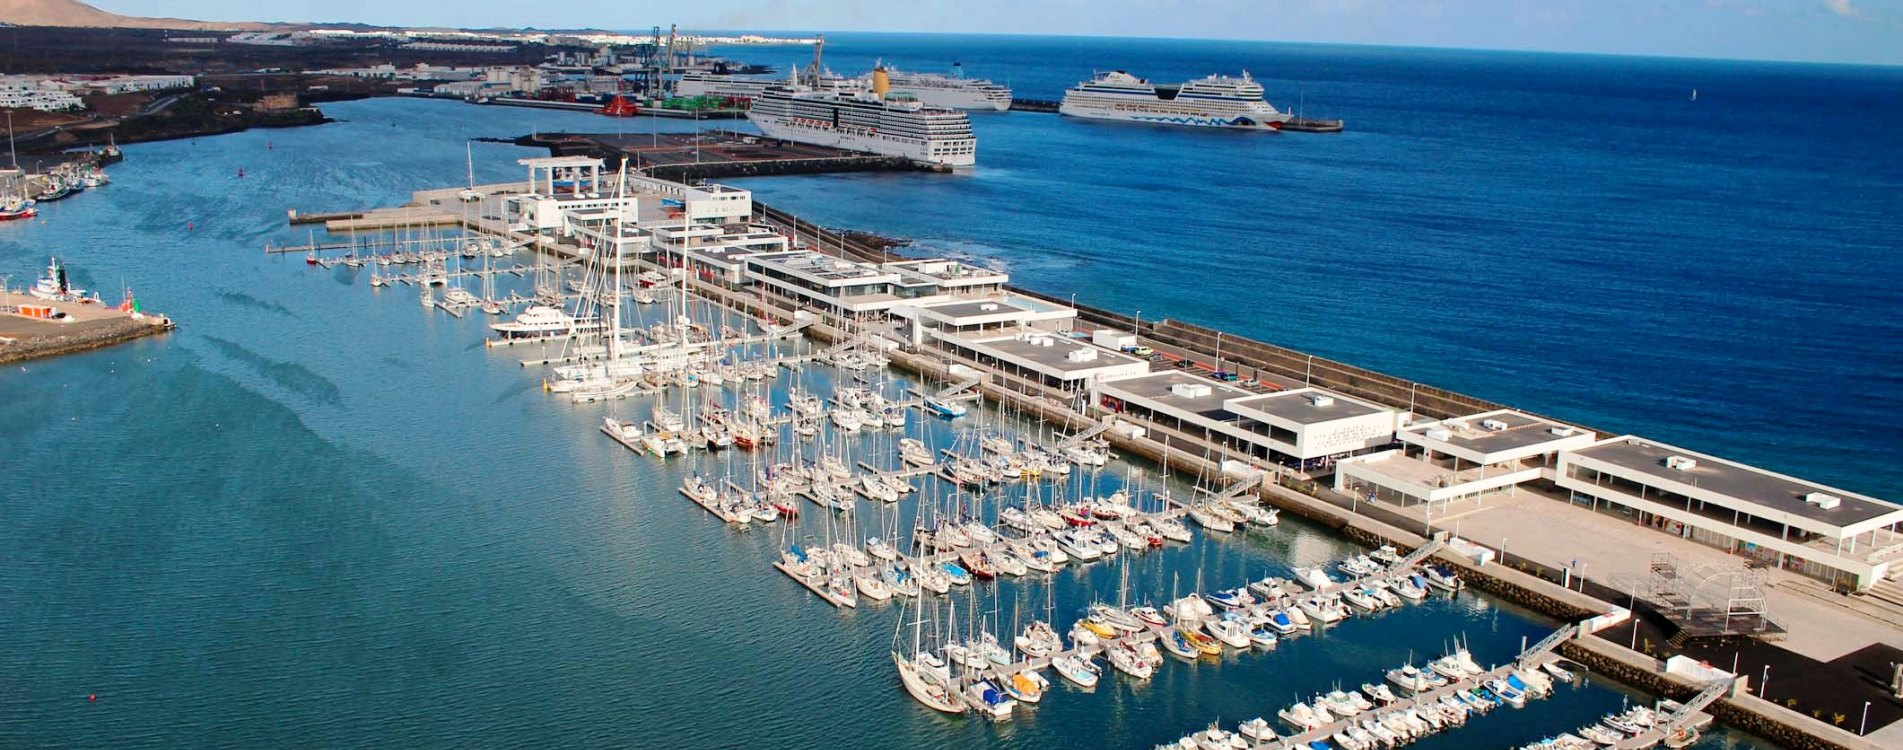 Calero Marinas - Marina Lanzarote, perfect for race preparations